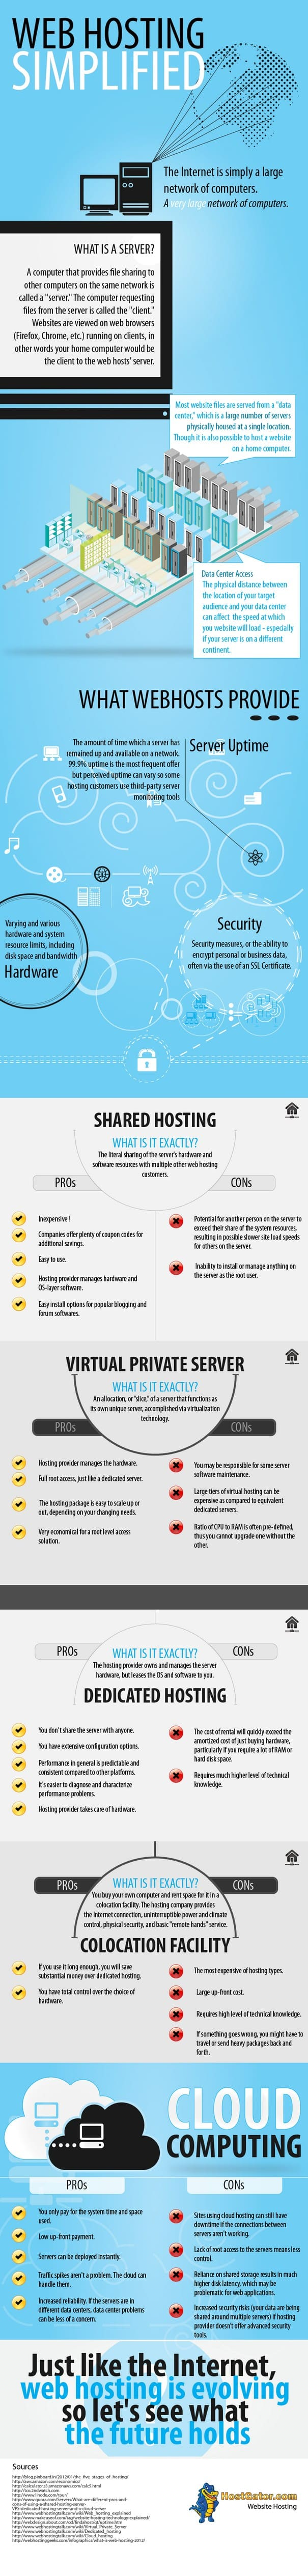 Webhosting Simplified - Infographic